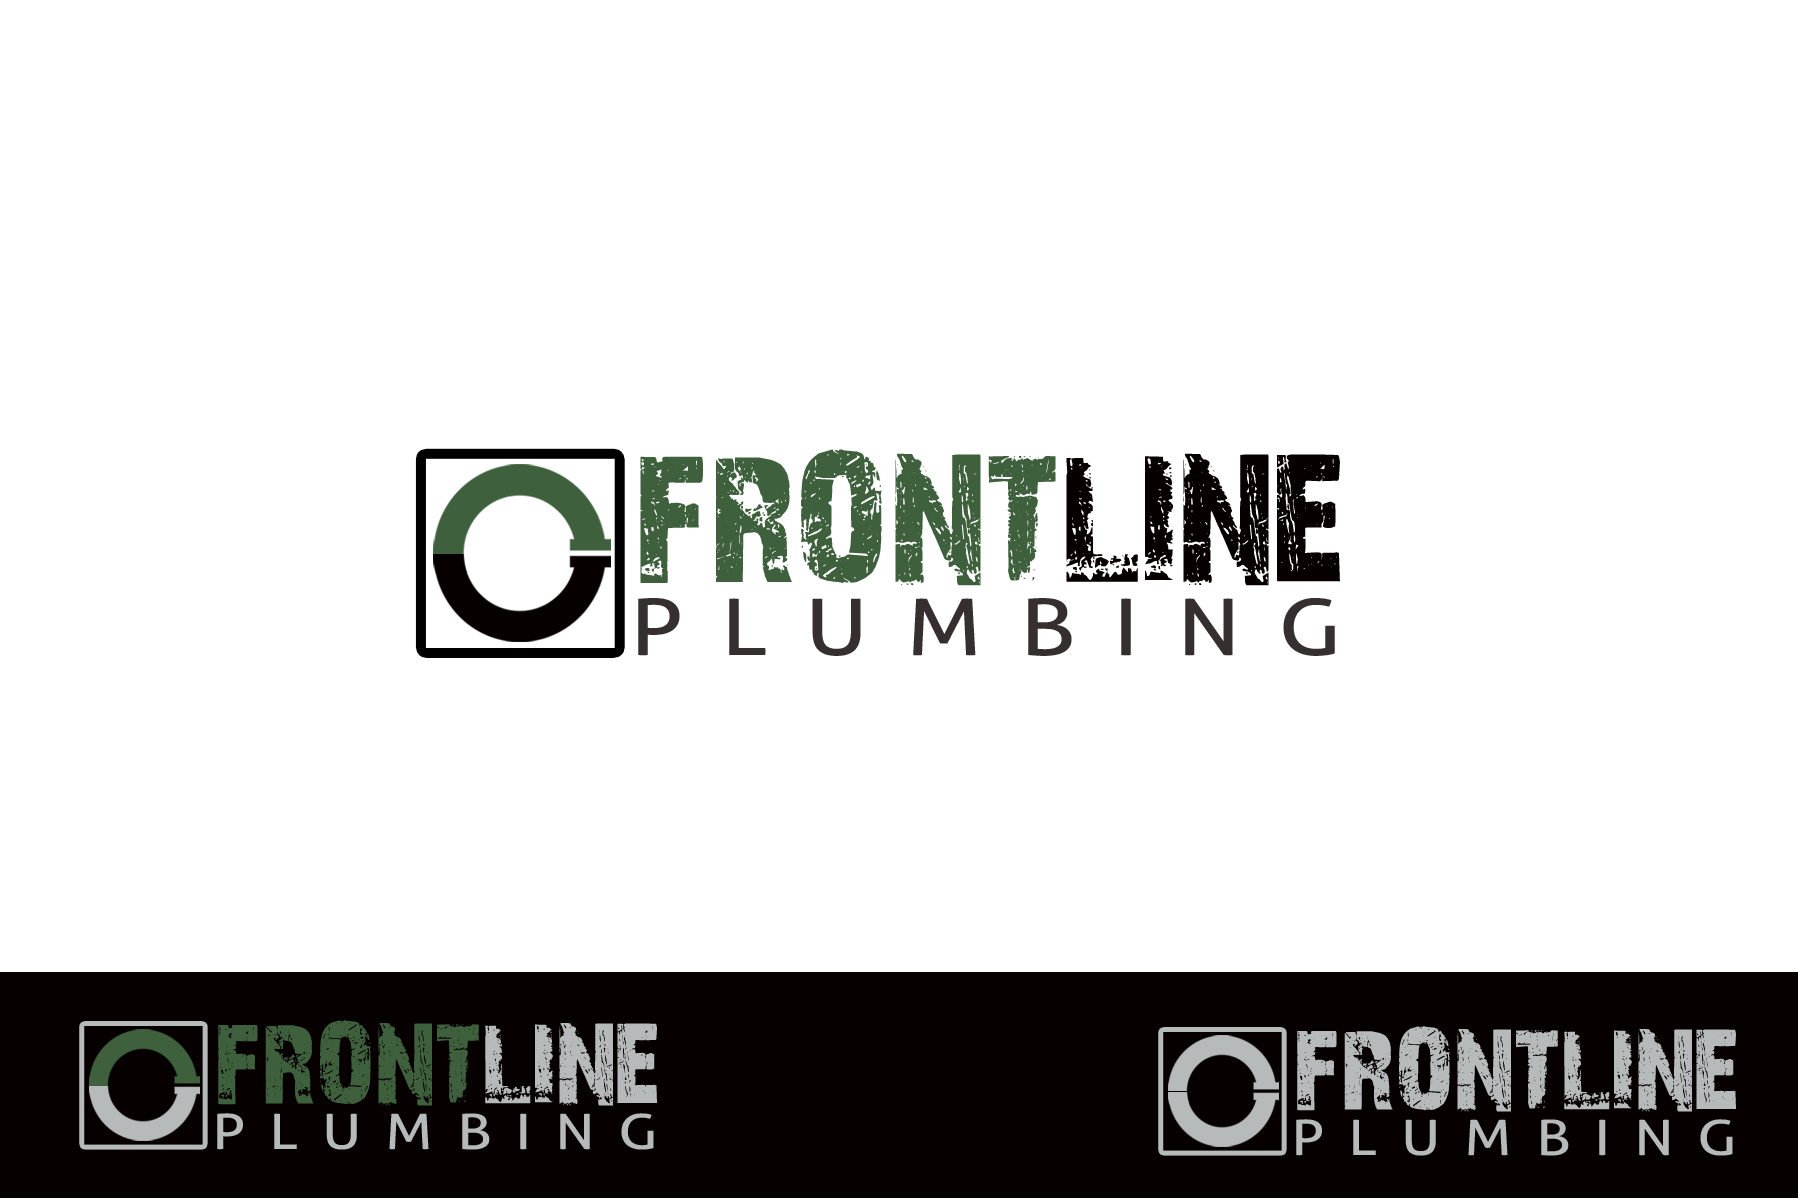 Logo Design by golden-hand - Entry No. 46 in the Logo Design Contest Fun Logo Design for Front Line Plumbing.